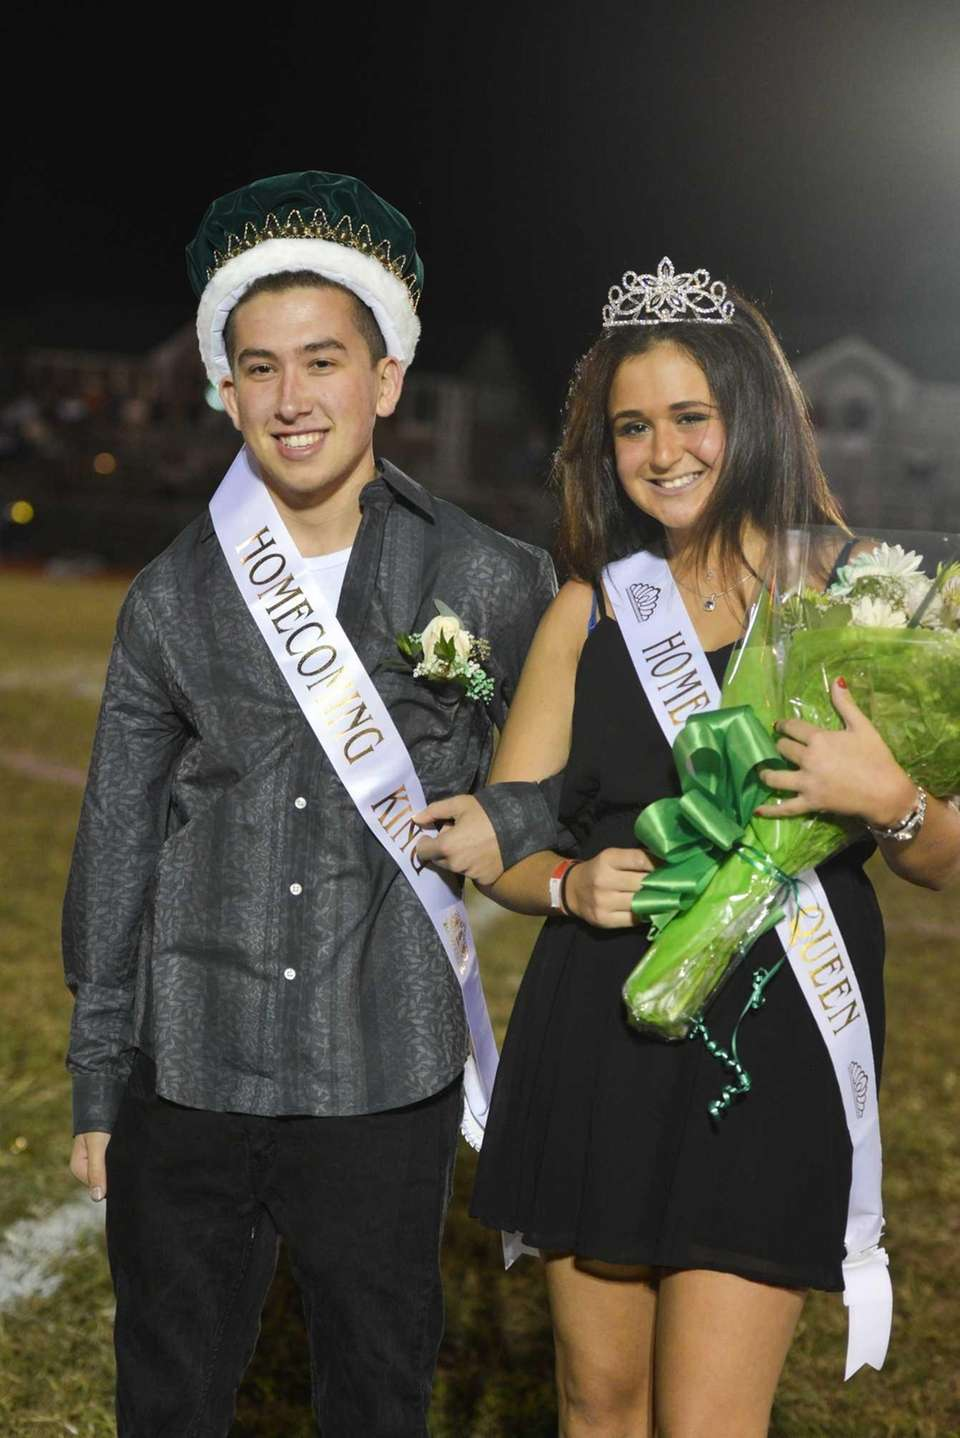 Jake Lapidot and Rachel Acampora were crowned homecoming